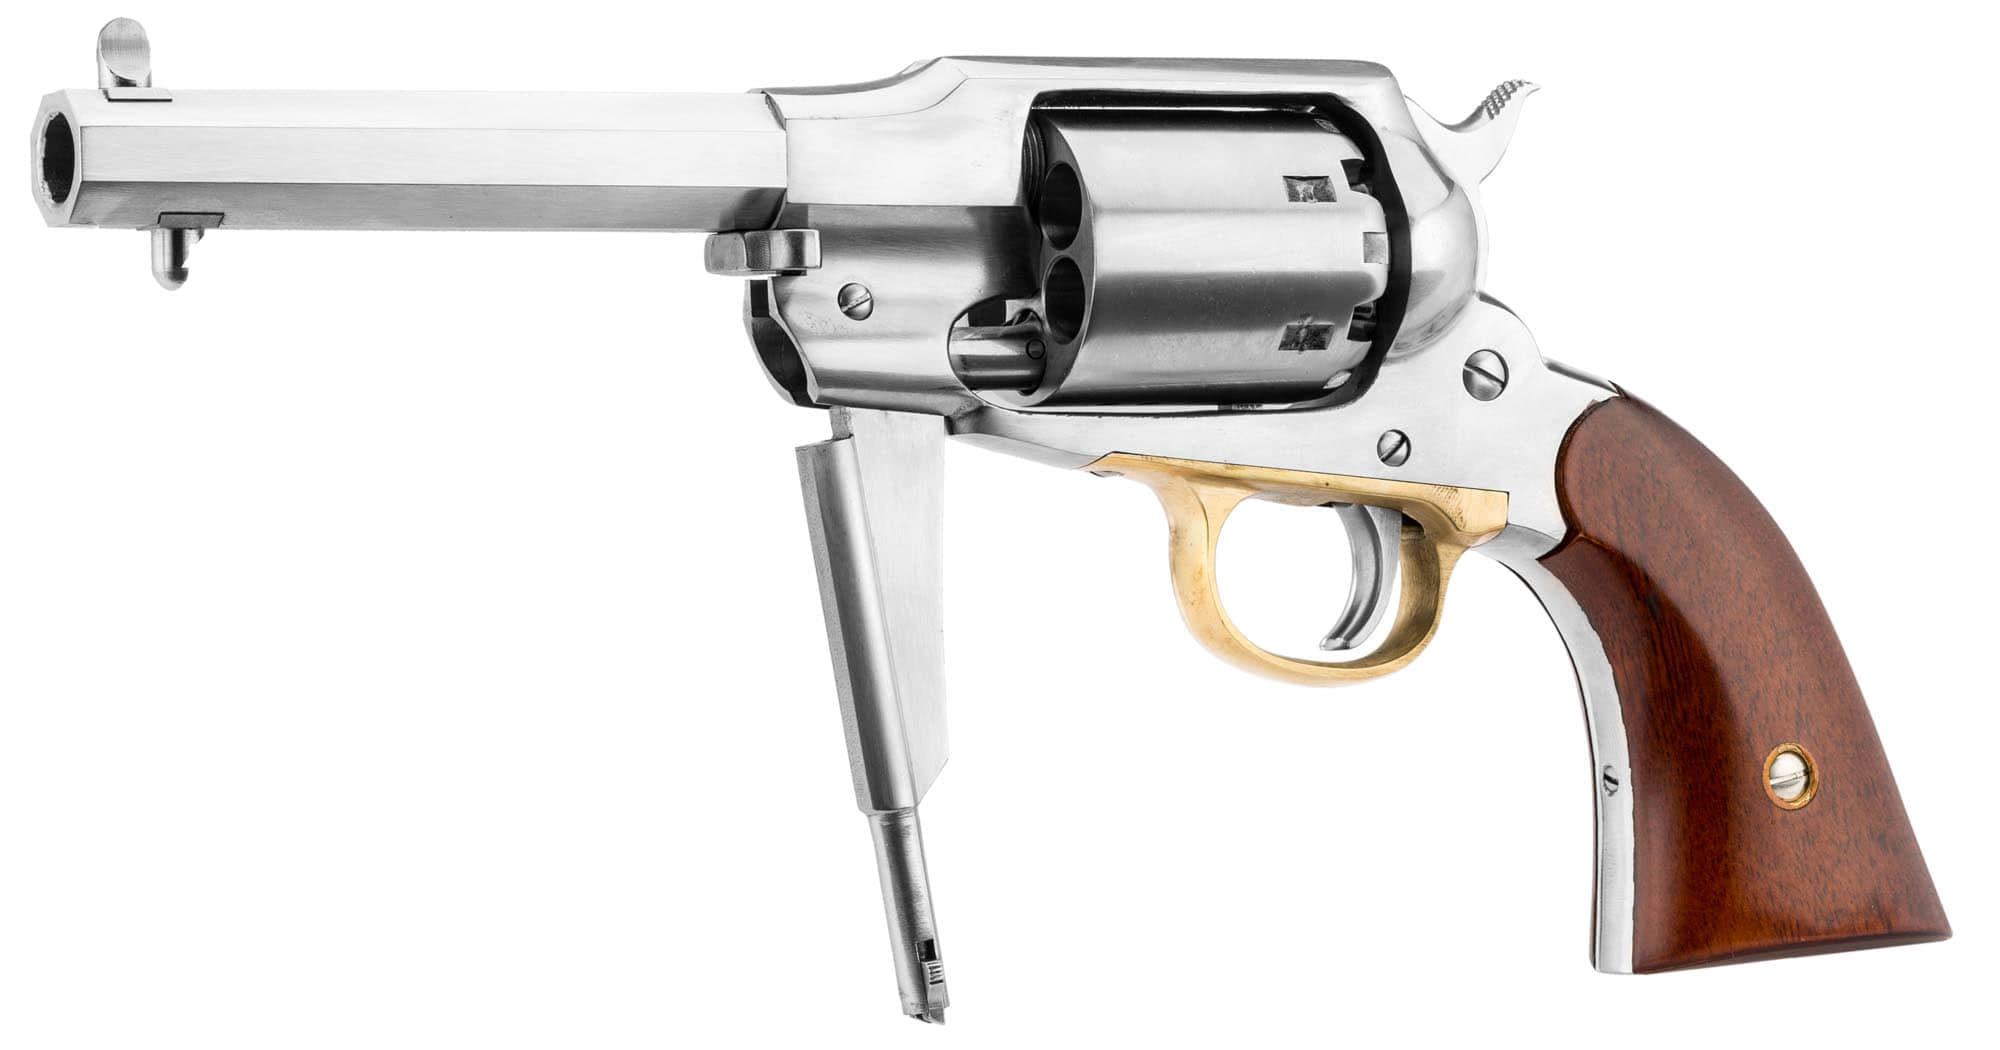 RE266-3-REMINGTON 1858 INOX - RE267